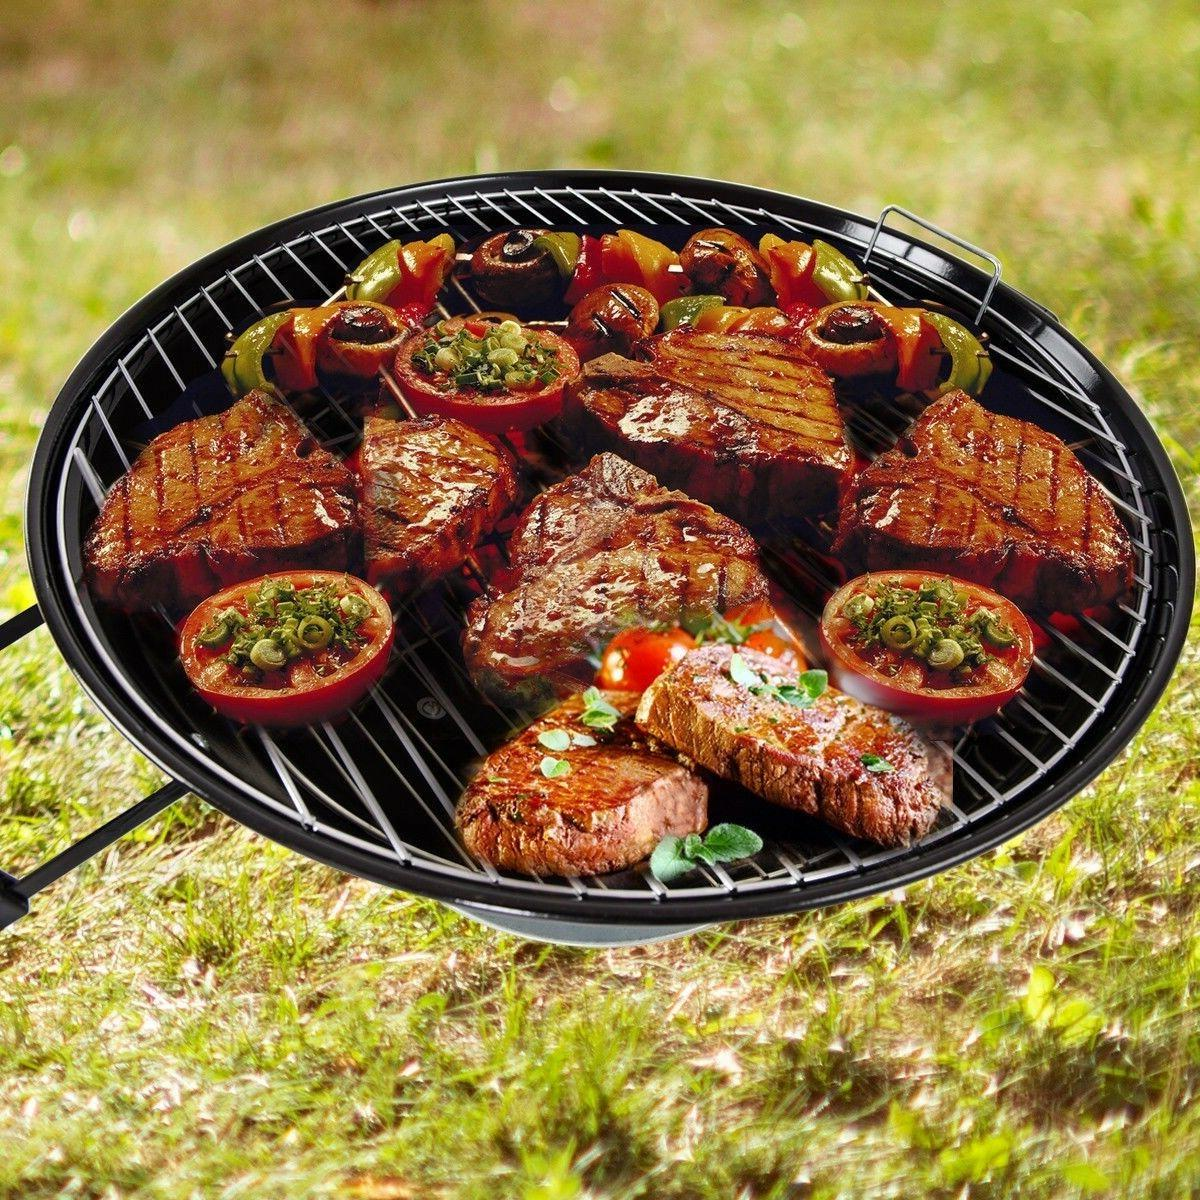 Portable Barbecue Camping Outdoor Dome